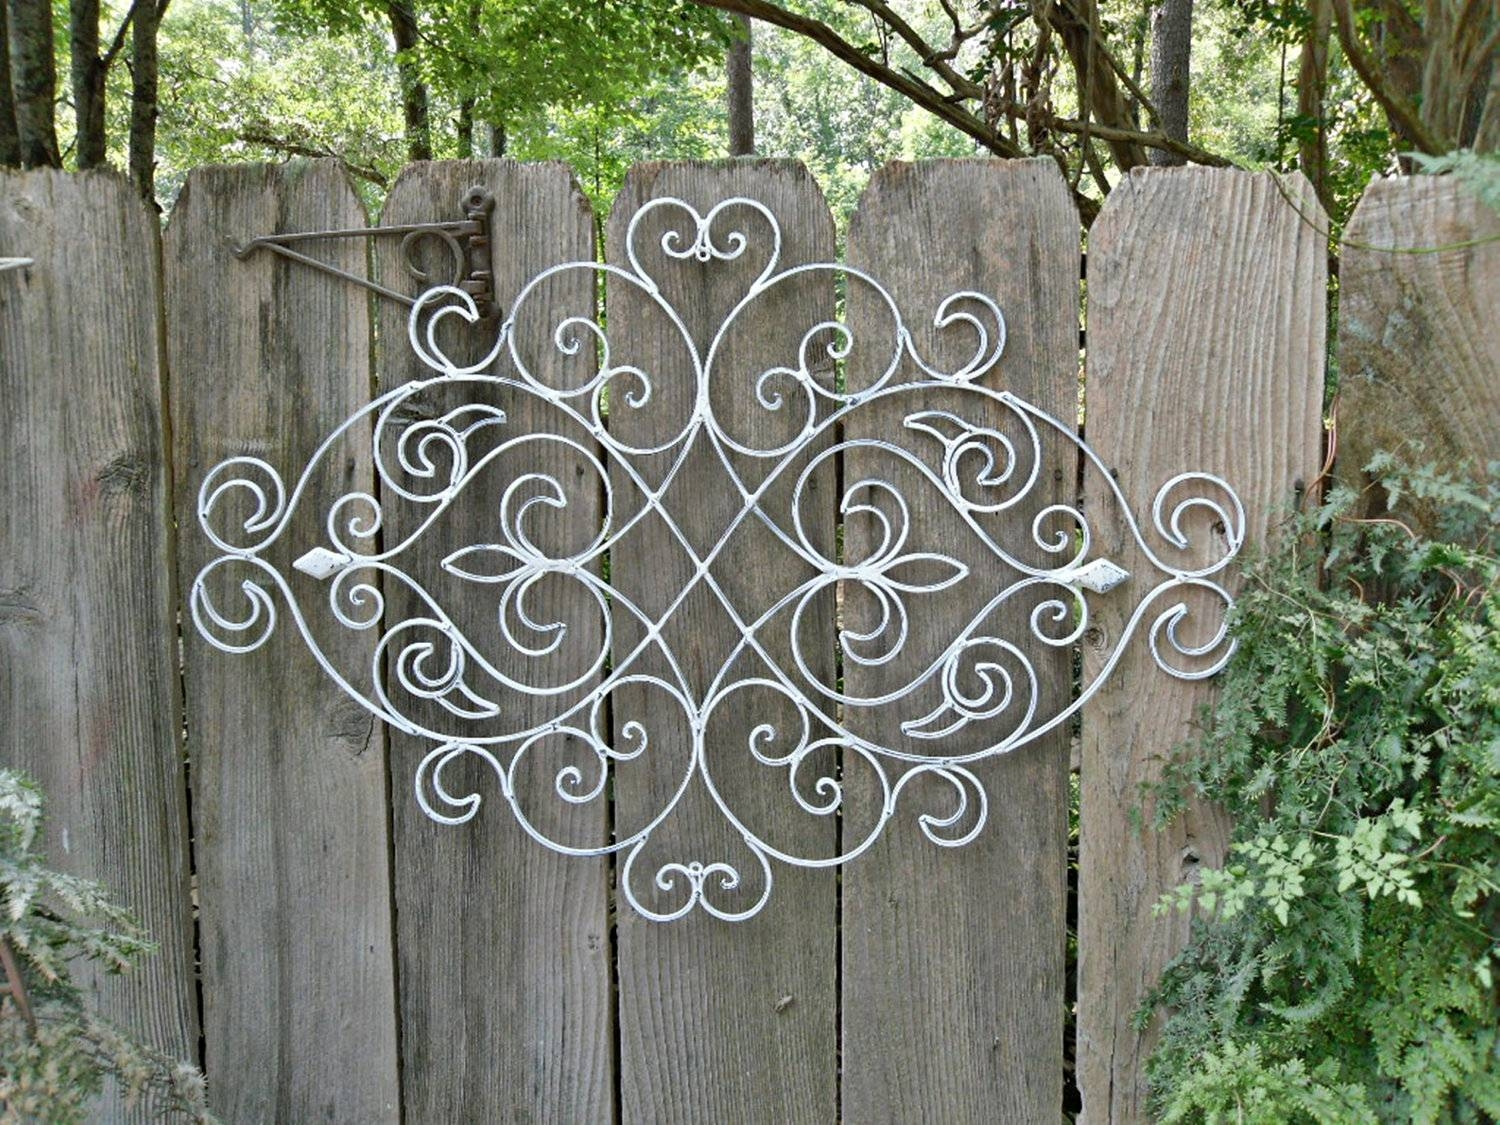 Outdoor Metal Wall Art Design Ideas | Indoor & Outdoor Decor In Latest Inexpensive Metal Wall Art (Gallery 5 of 20)